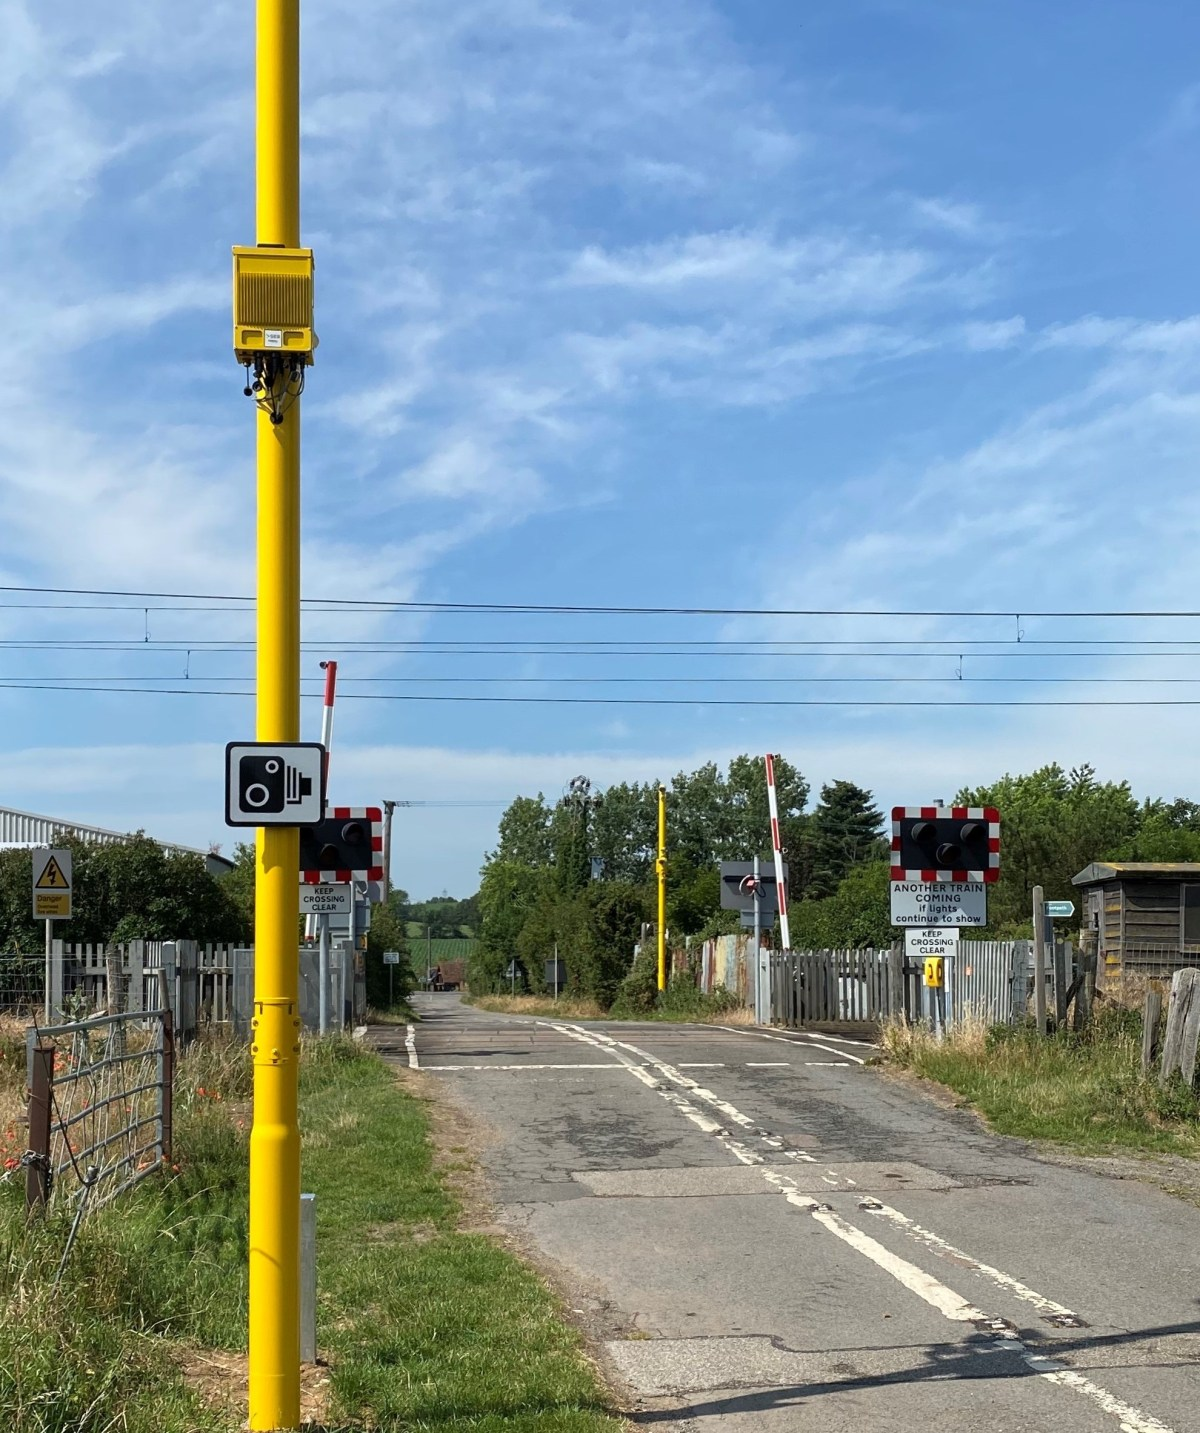 Level crossing cameras installed to catch motorists who endanger lives on the railway